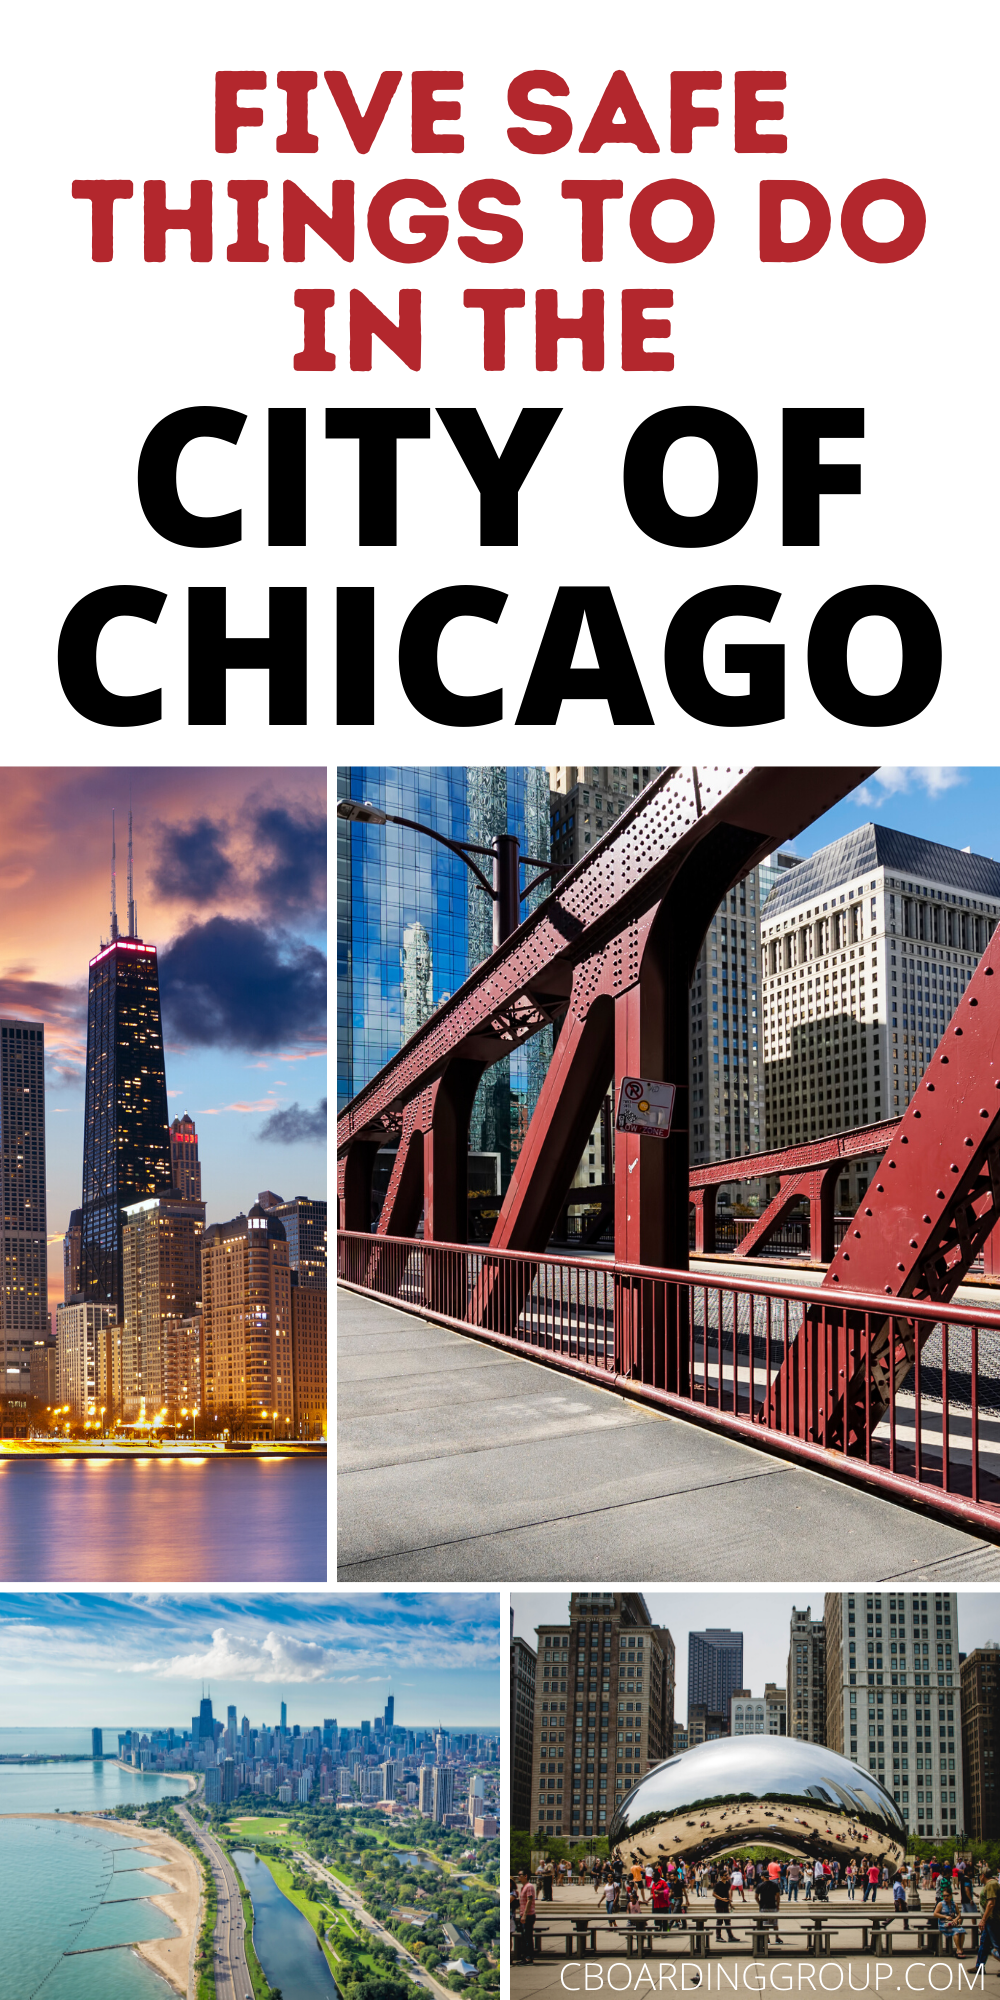 While travel and activities with crowds are not an option right now, there are some safe activities in which you can engage in the Chicagoland area to get your summer fix. Here are five safe things to do in the Chicagoland area to both get out and avoid getting COVID-19.